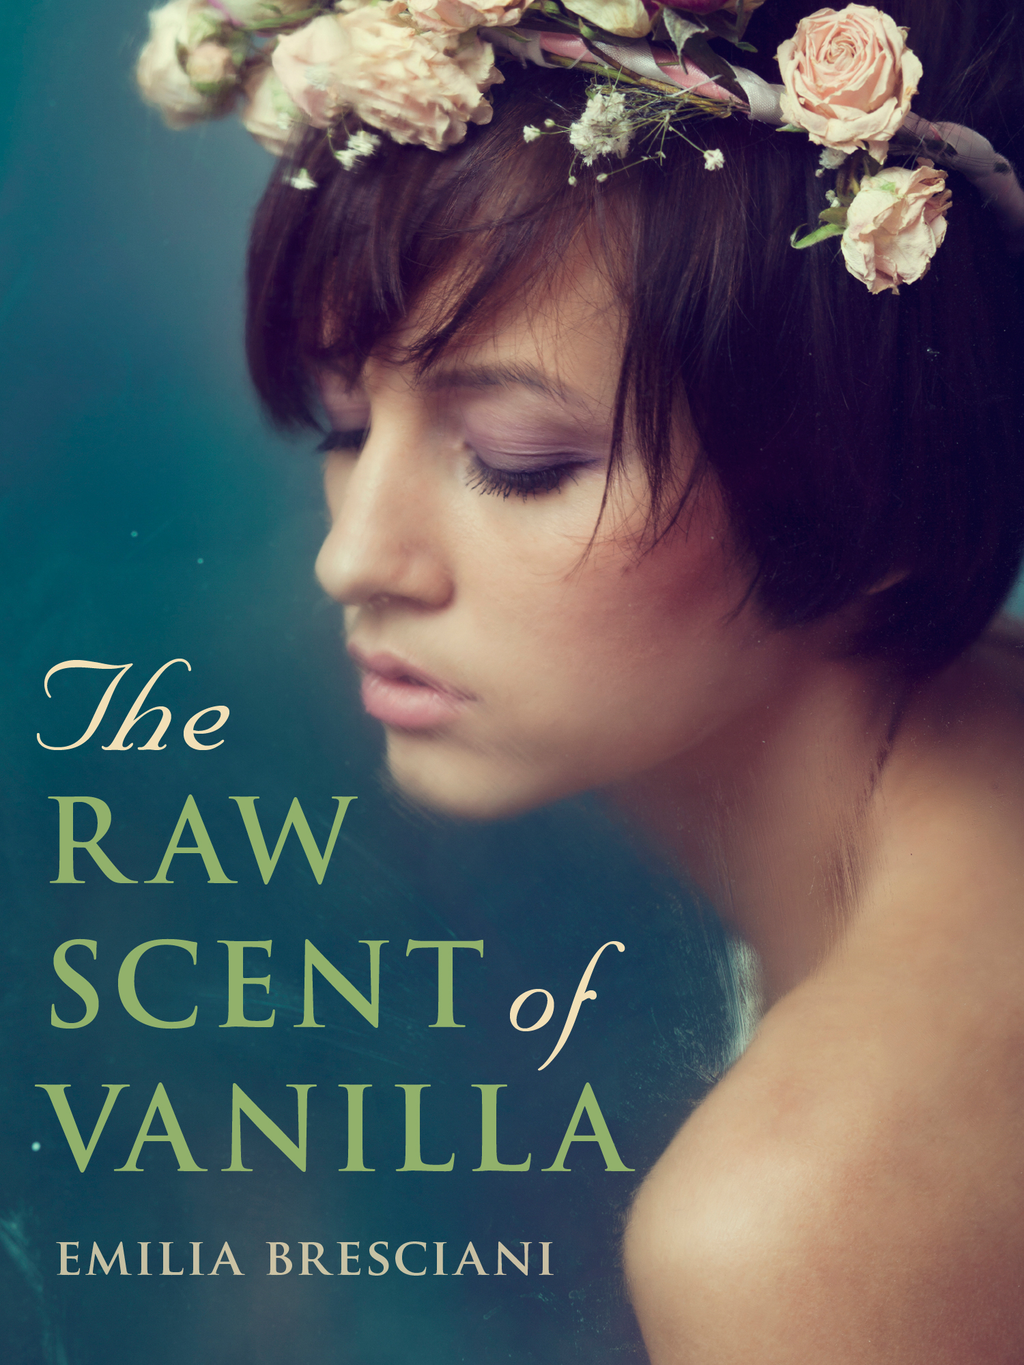 The Raw Scent of Vanilla